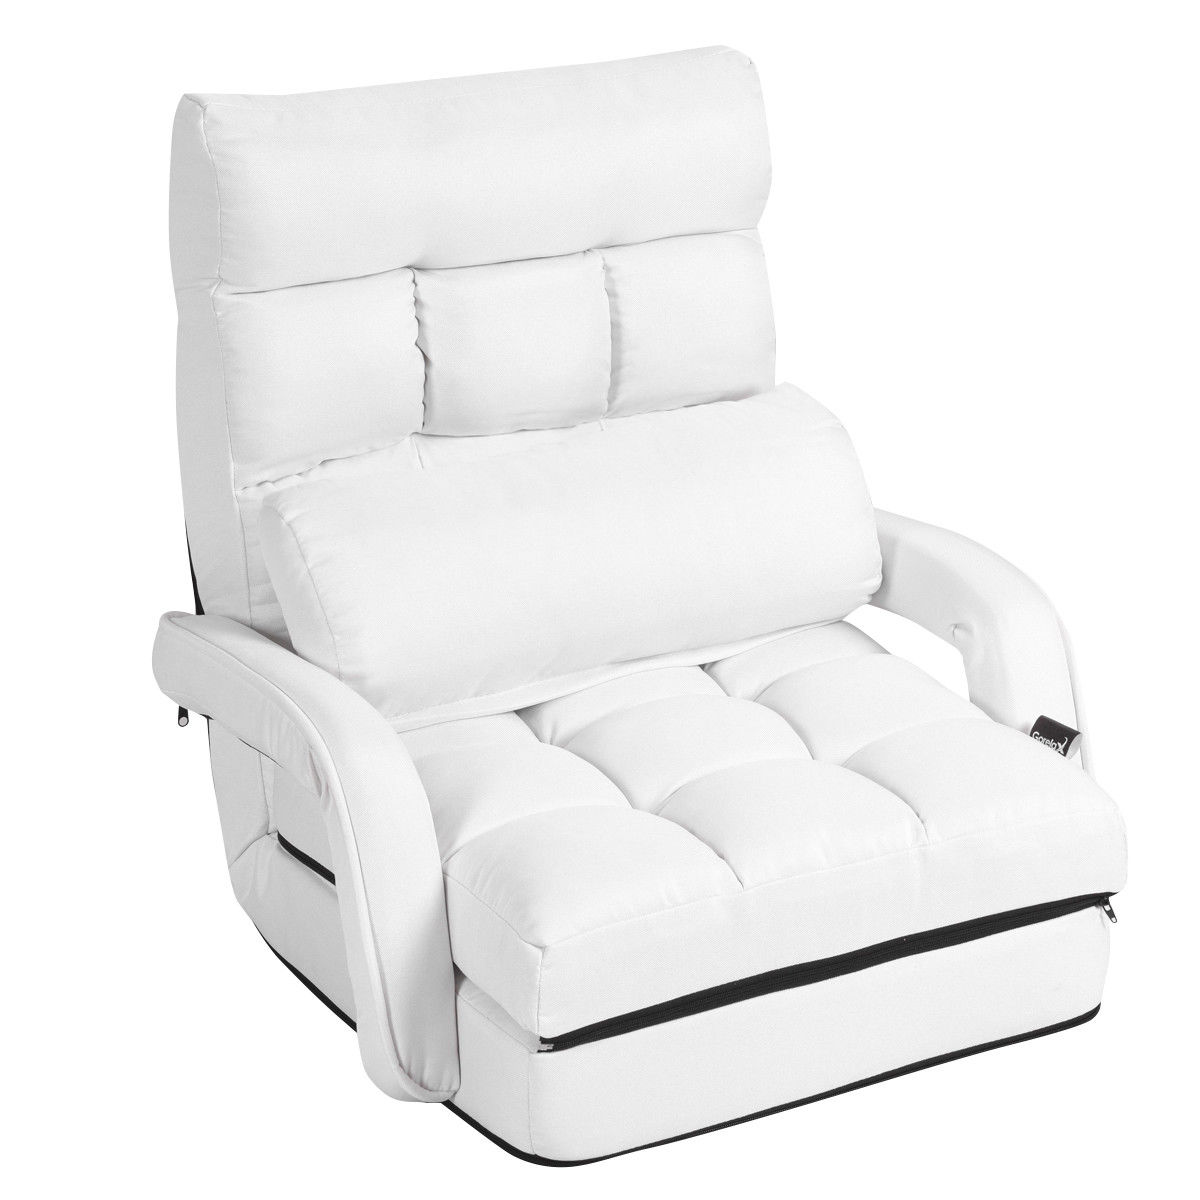 Costway Folding Lazy Sofa Lounger Bed Floor Chair Sofa W